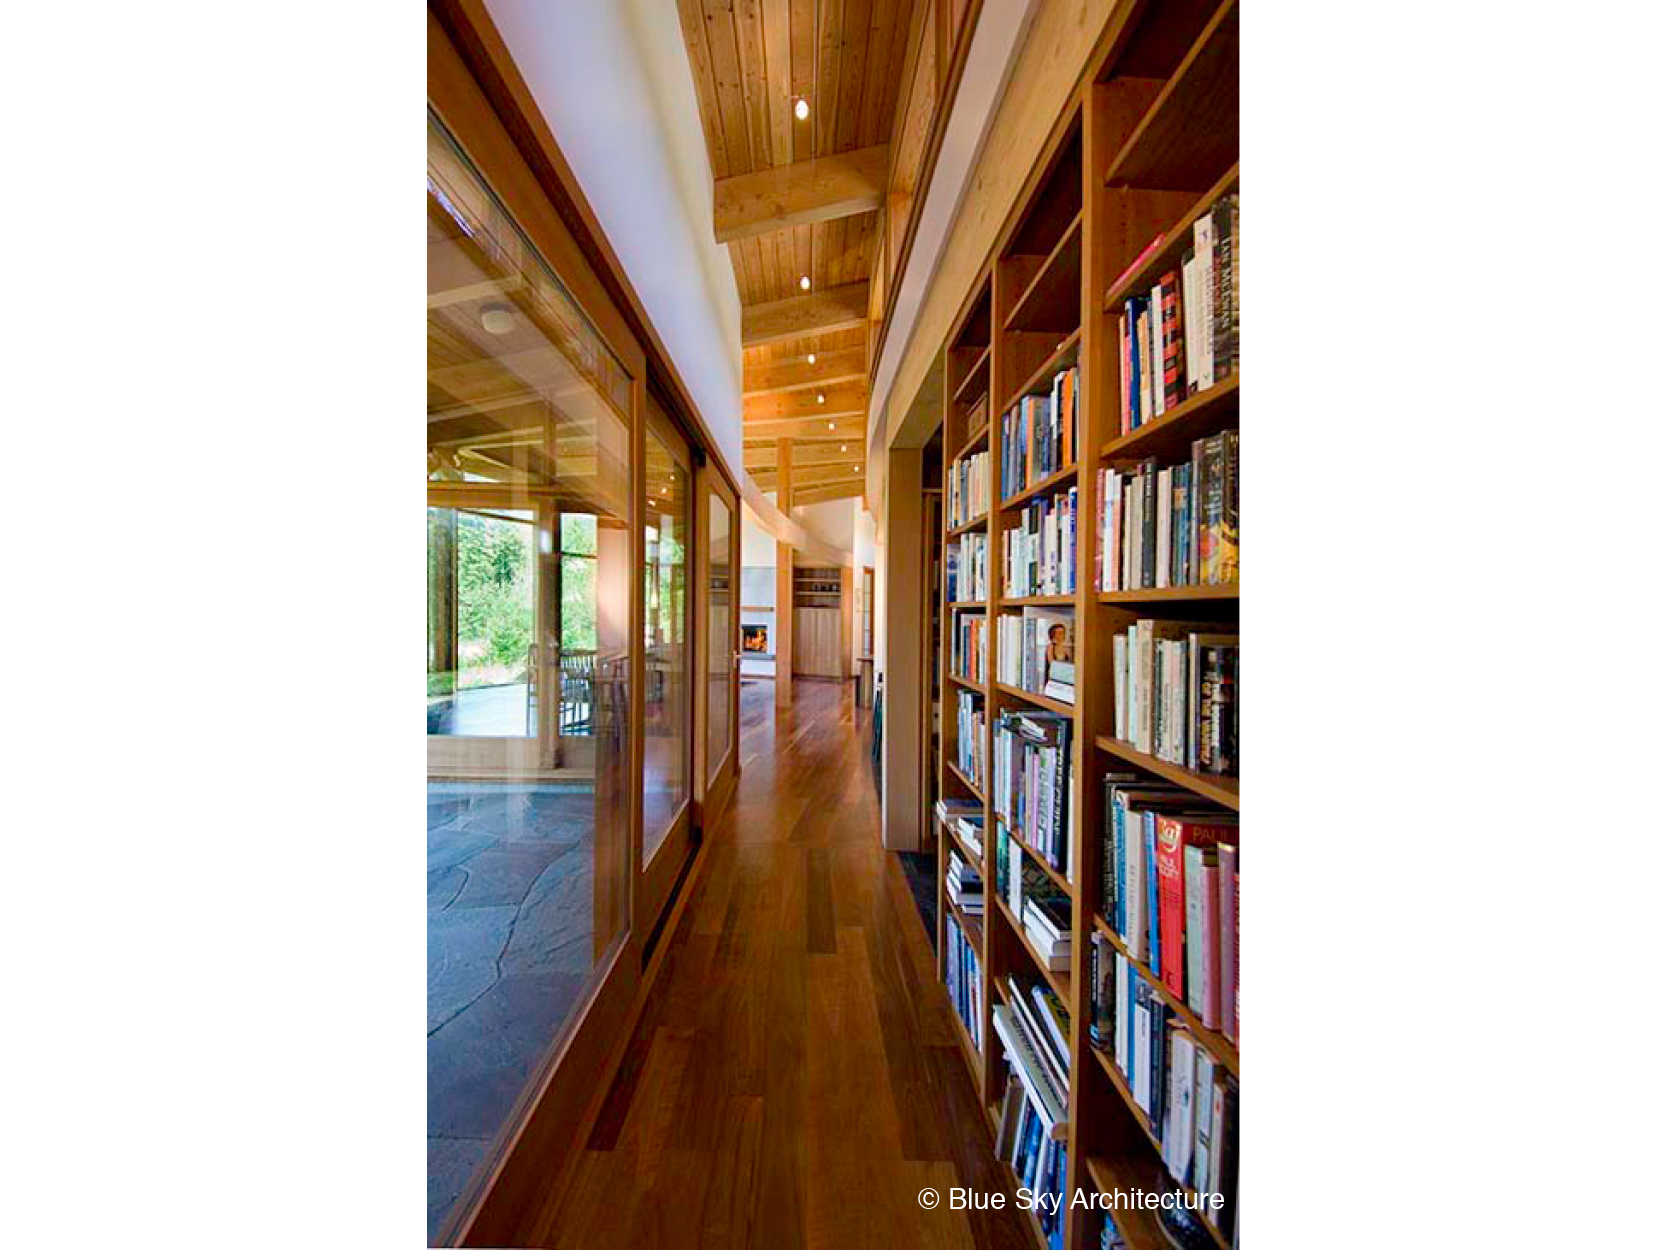 HollyFarm-house-hallway-bookshelves-wood-window.jpg